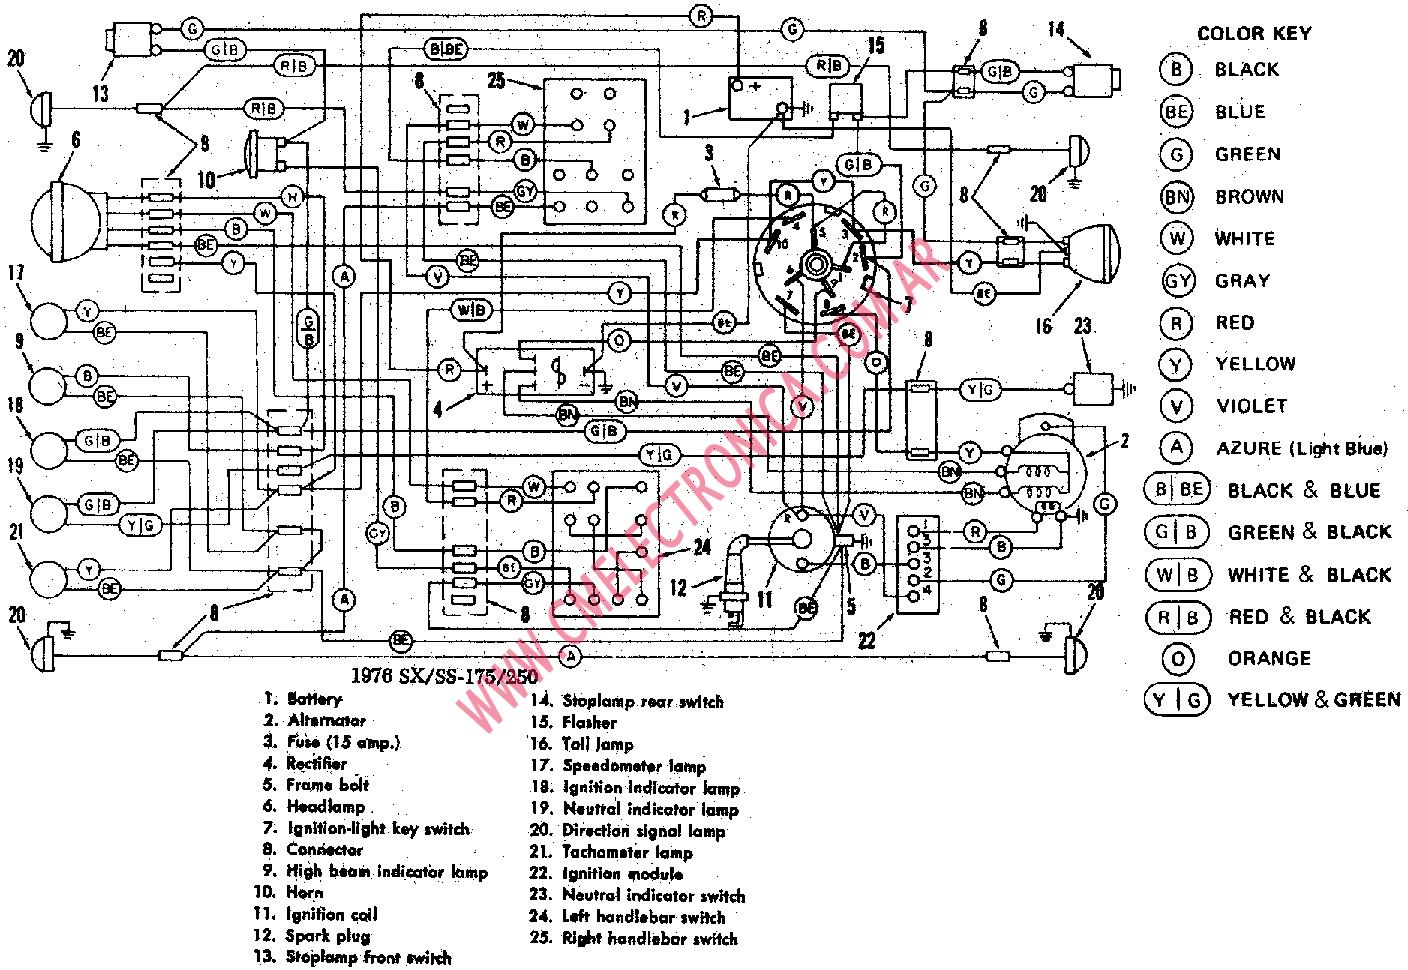 76 Harley Wiring Diagram - Schematics Online on